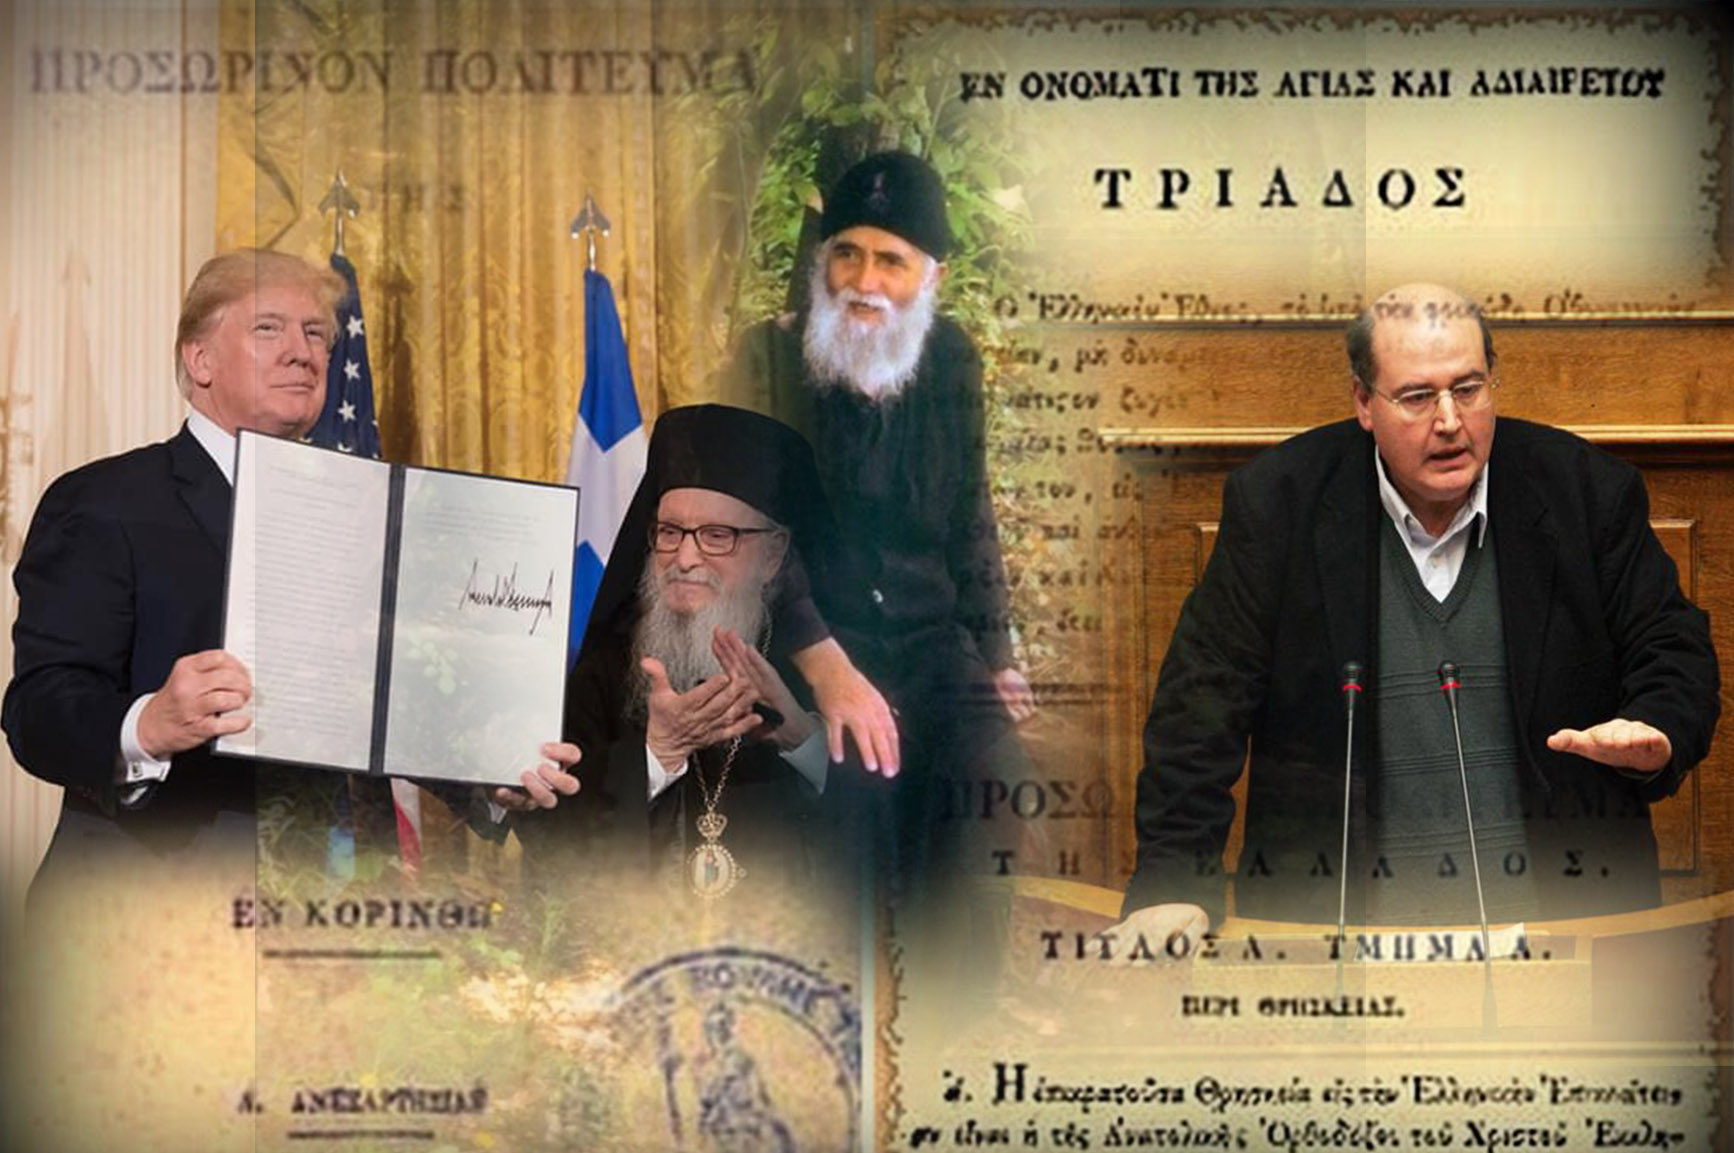 http://www.romfea.gr/images/article-images/2018/3/romfea/banner_trump.jpg